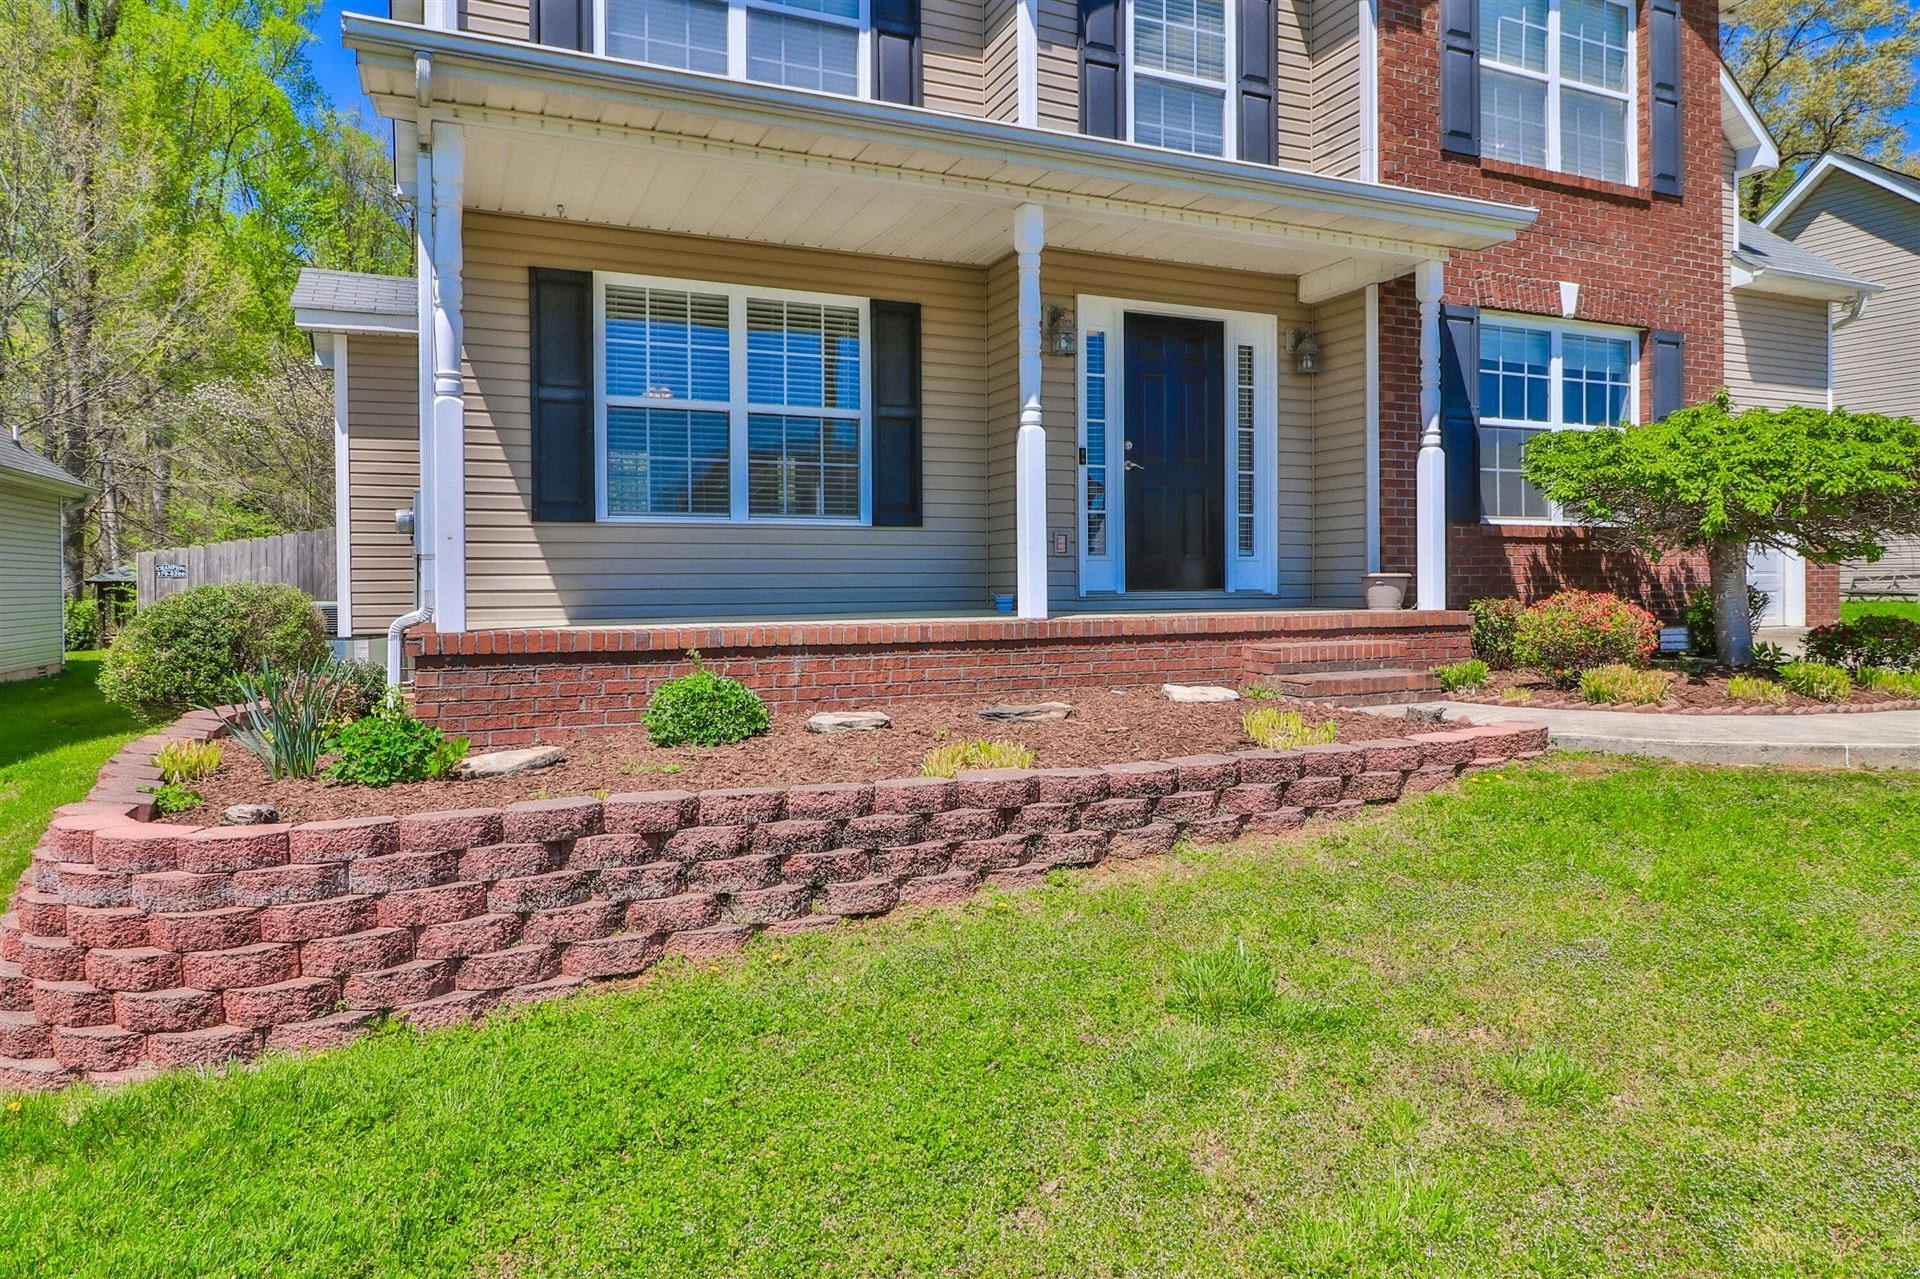 Photo of 2911 Porch Swing Rd, Knoxville, TN 37938 (MLS # 1148101)